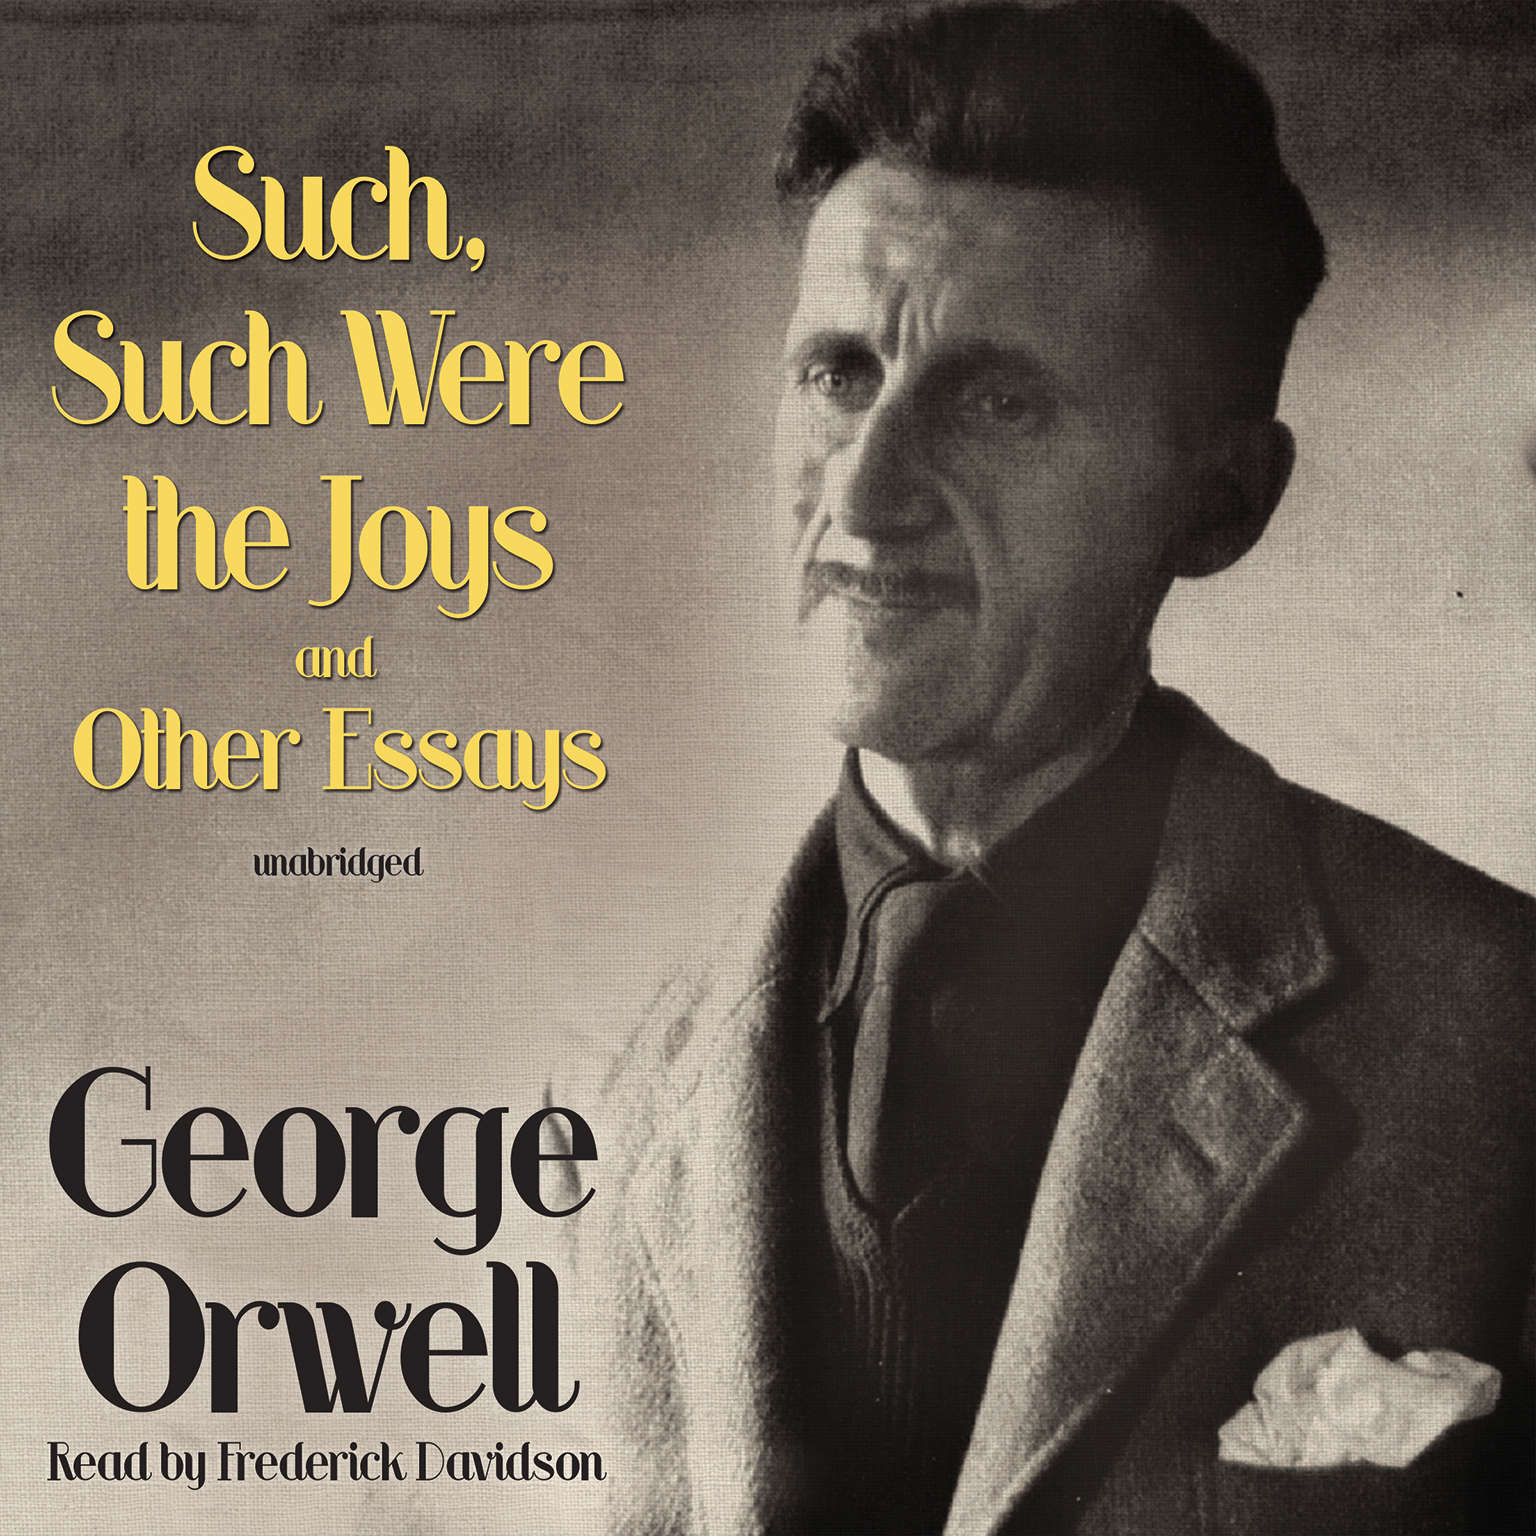 hear such such were the joys and other essays audiobook by george extended audio sample such such were the joys and other essays by george orwell